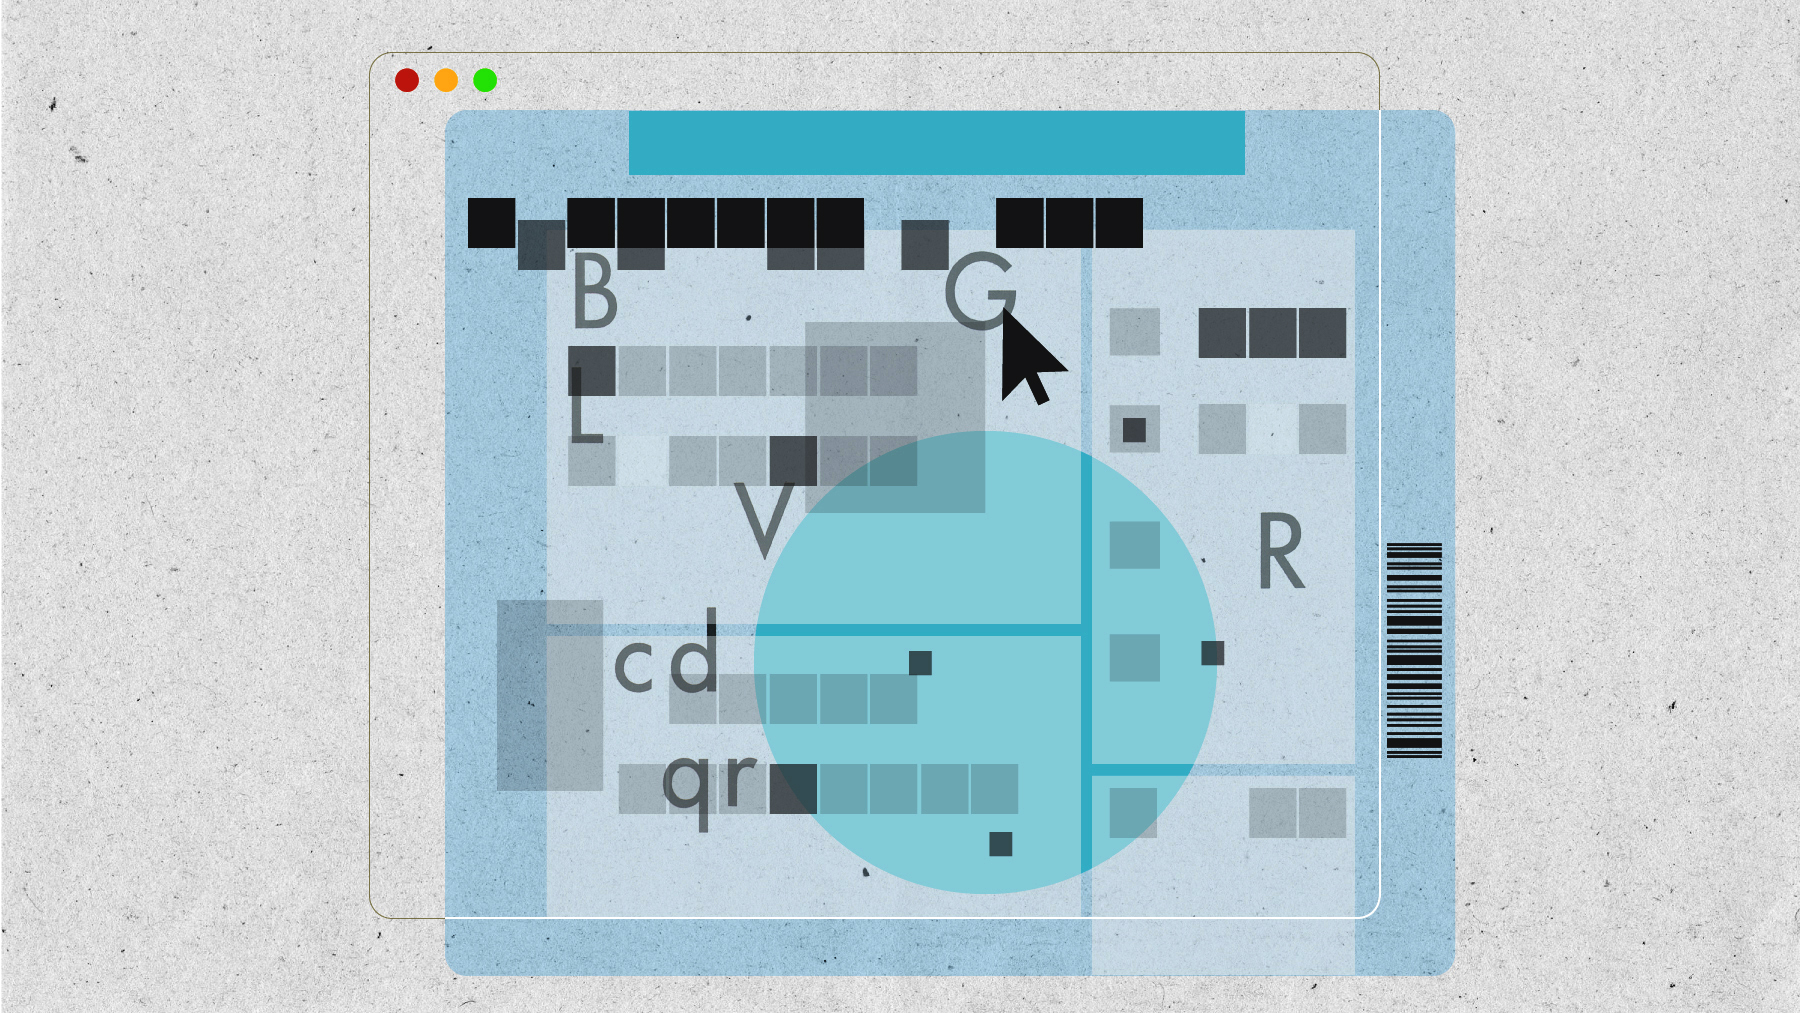 An illustration using rounded and transitional squares and circle elements that look like a census form in an internet browser.